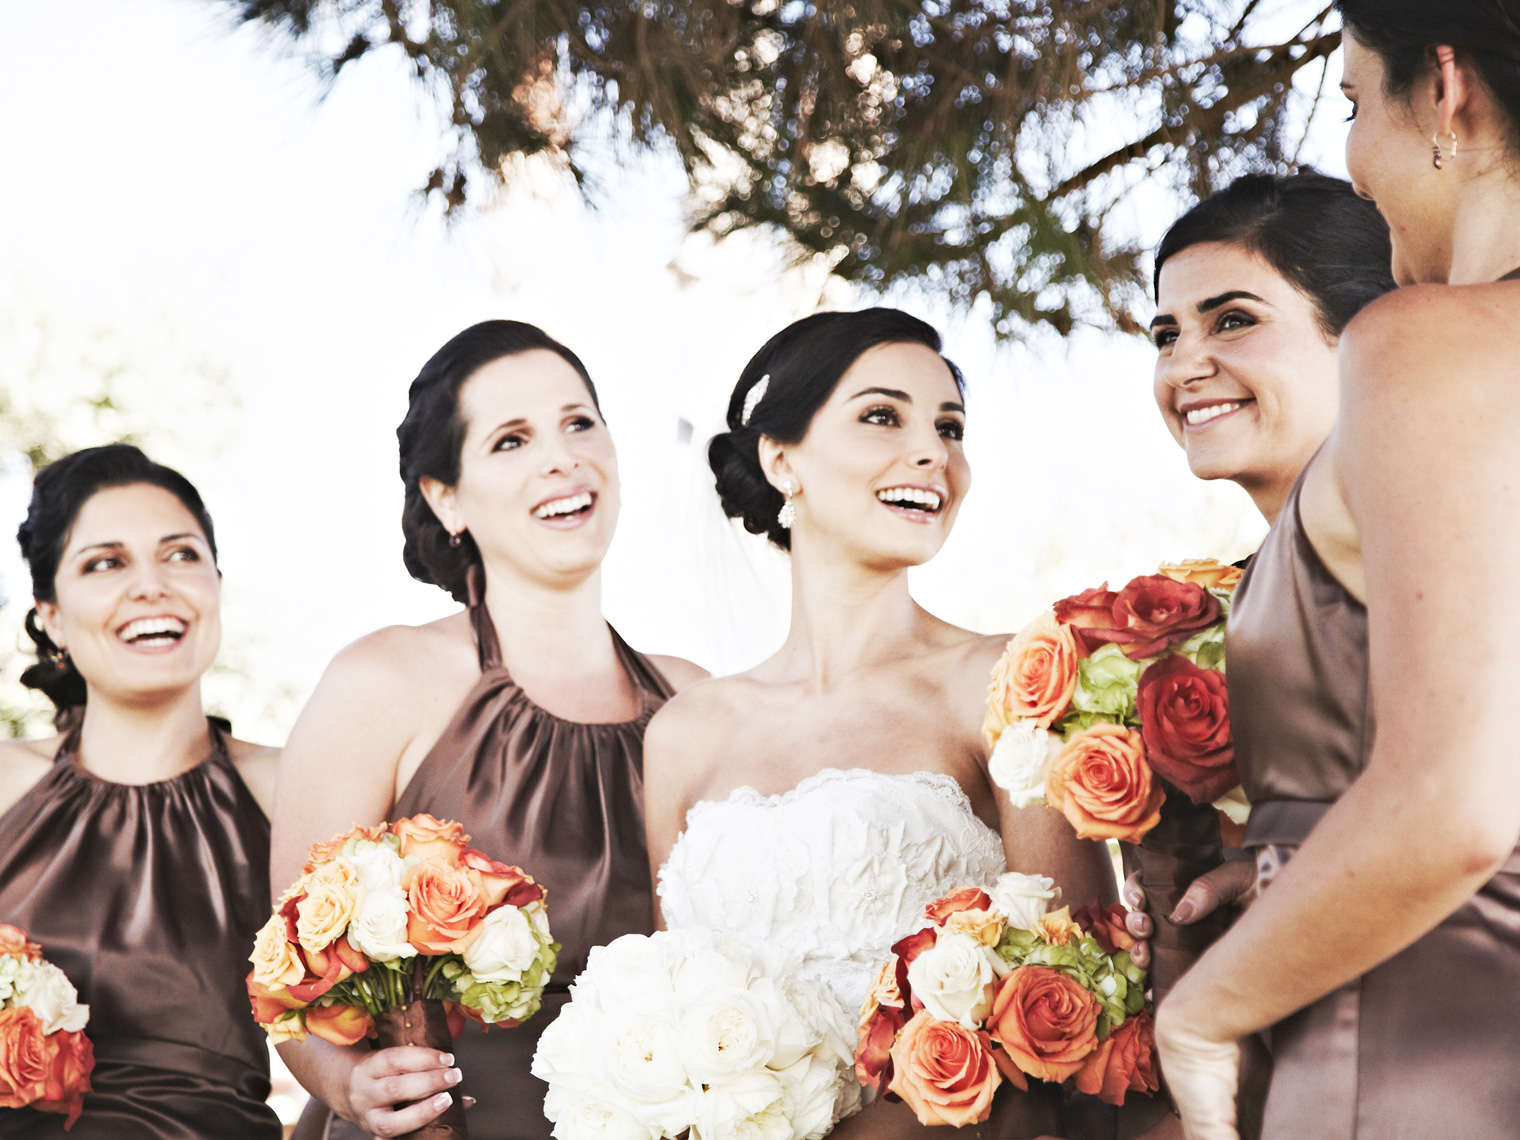 Brides with bridesmaids at Montage Resort Laguna Beach, California